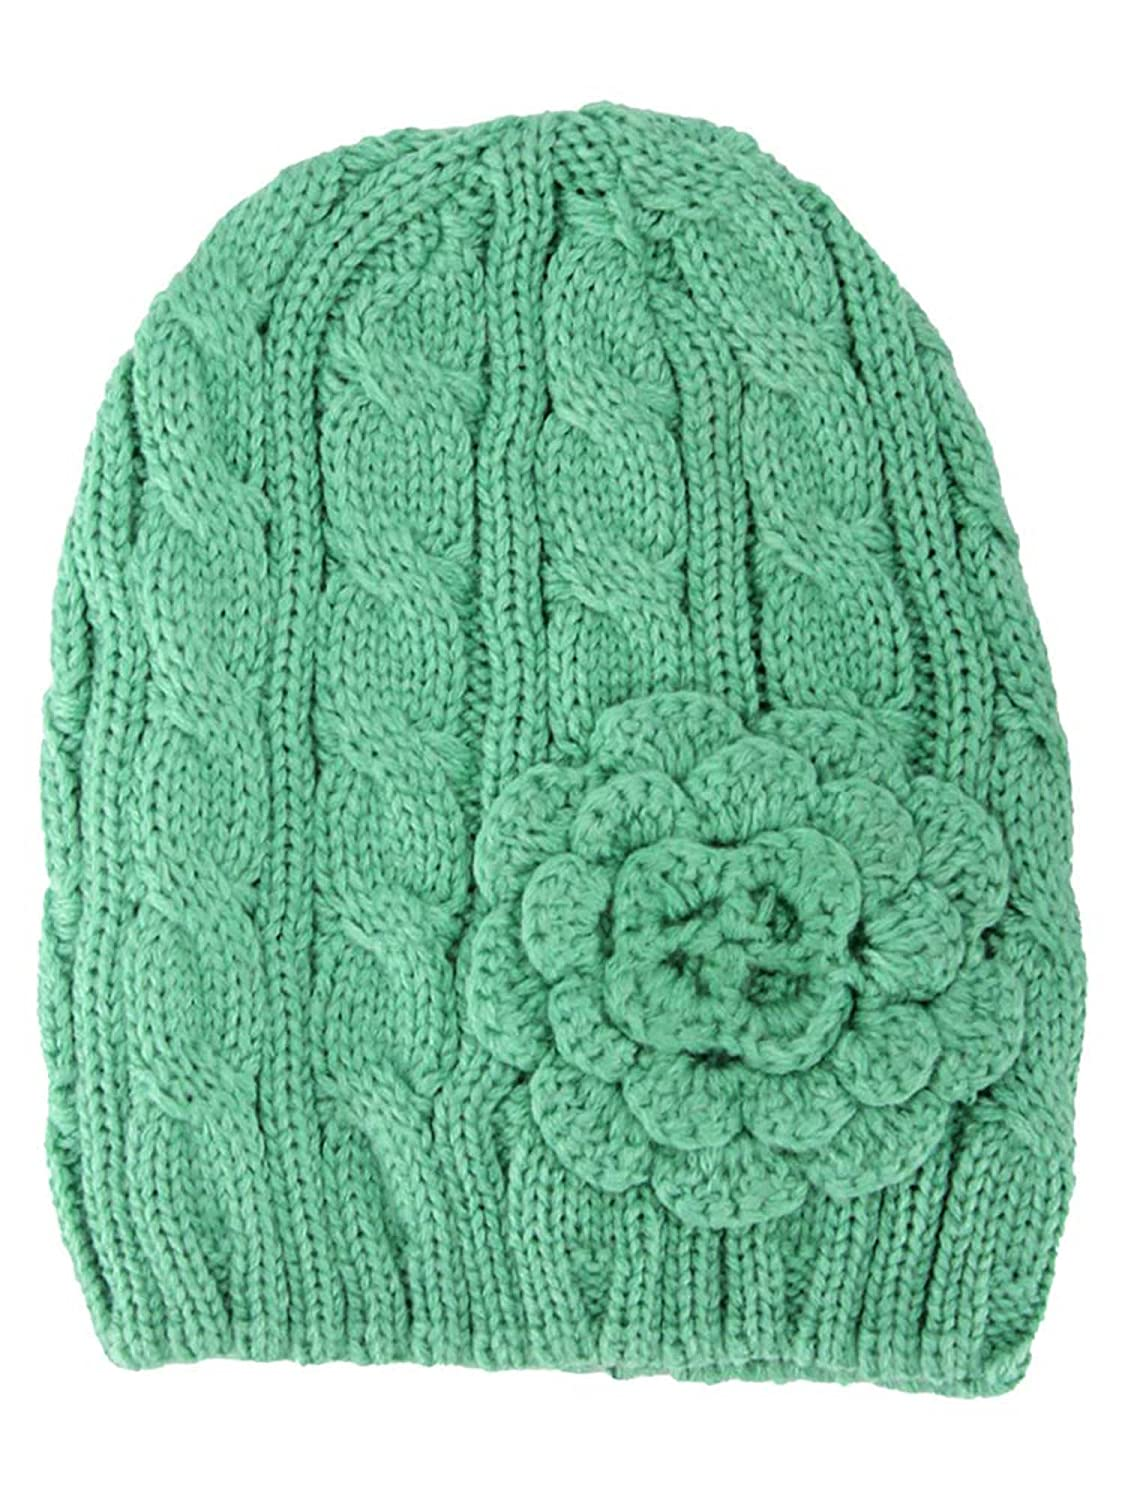 Luxury Divas Sage Green Thick Cable Knit Beanie Hat With Rosette at Amazon  Women s Clothing store  27de8044d75